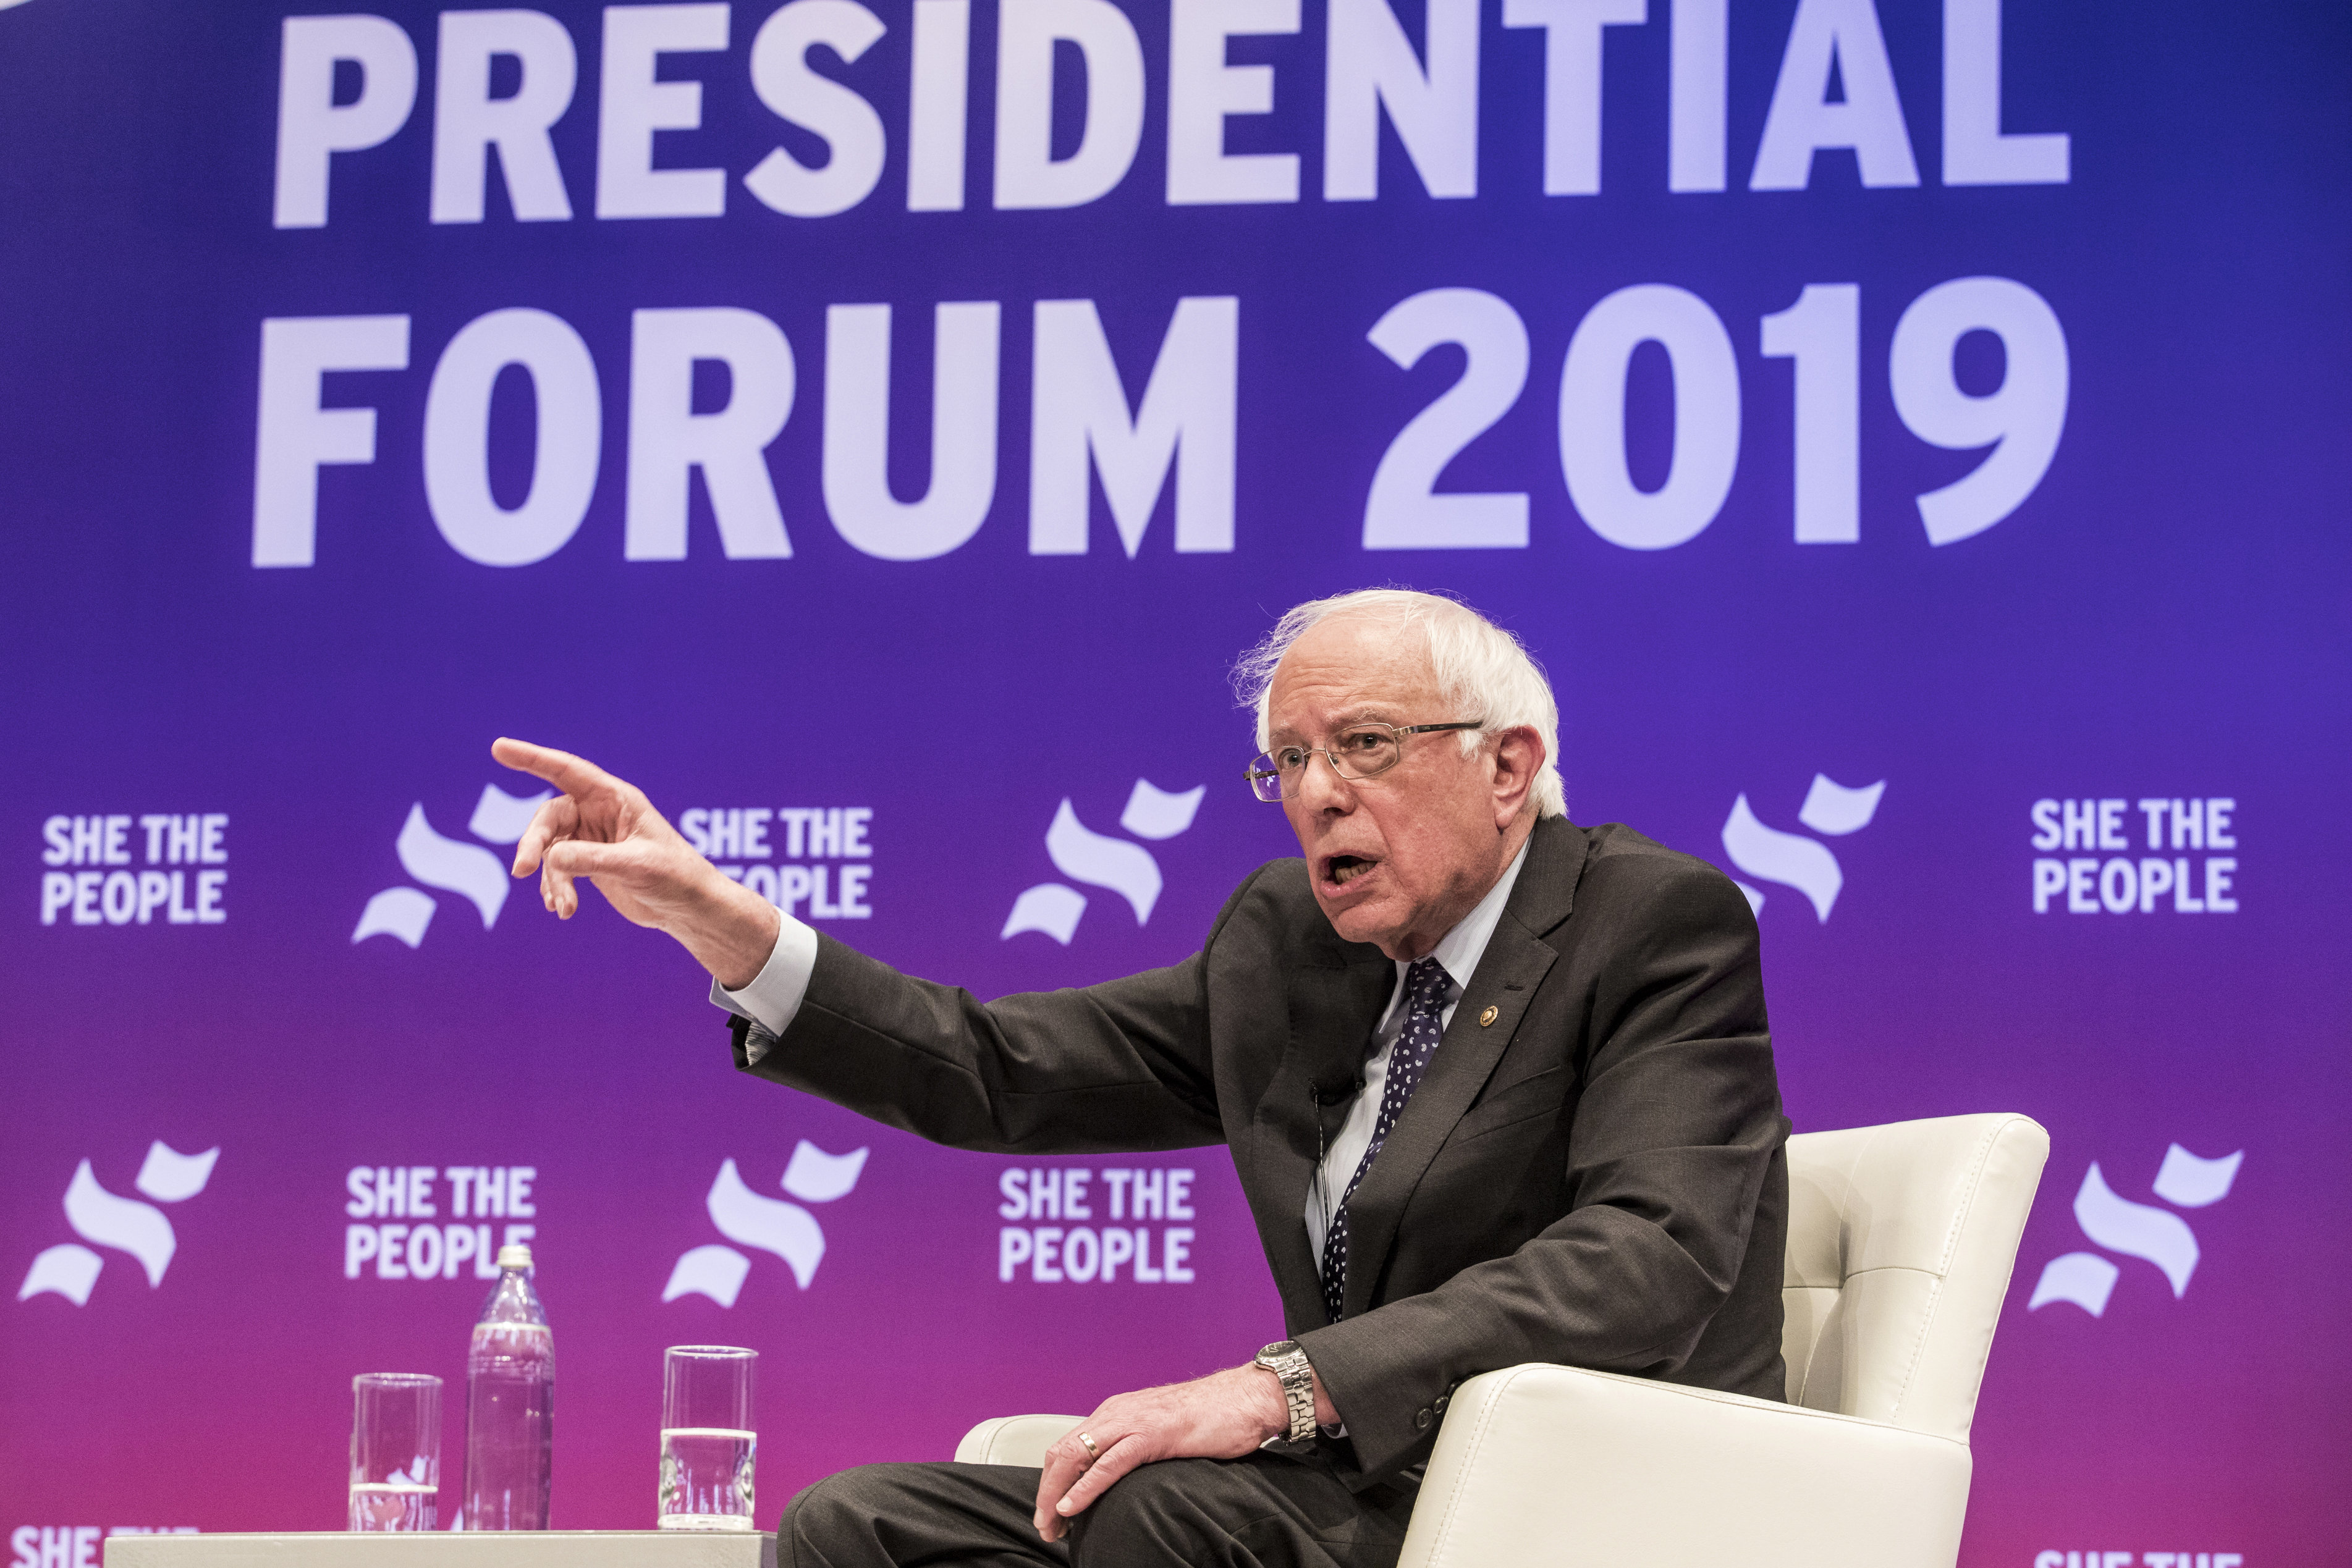 Sen. Bernie Sanders appears to be the first candidate seeking the nomination of a major party to endorse the idea that people